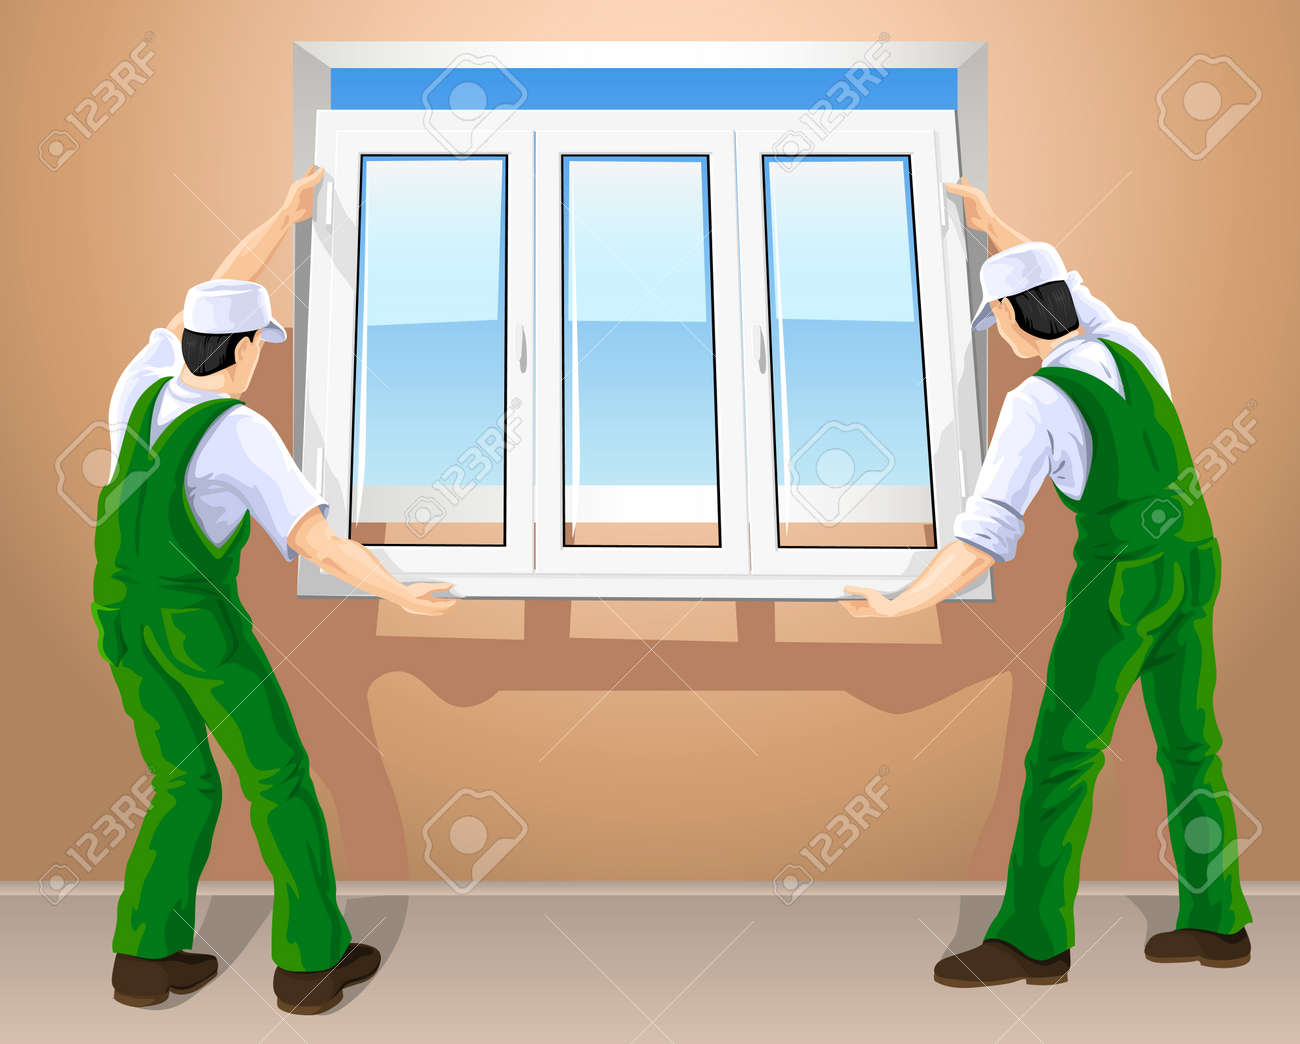 Cartoon kitchen with cabinets and window vector art illustration - Repair Room Wall Window Two Workers Editing New Plastic Window Vector Illustration